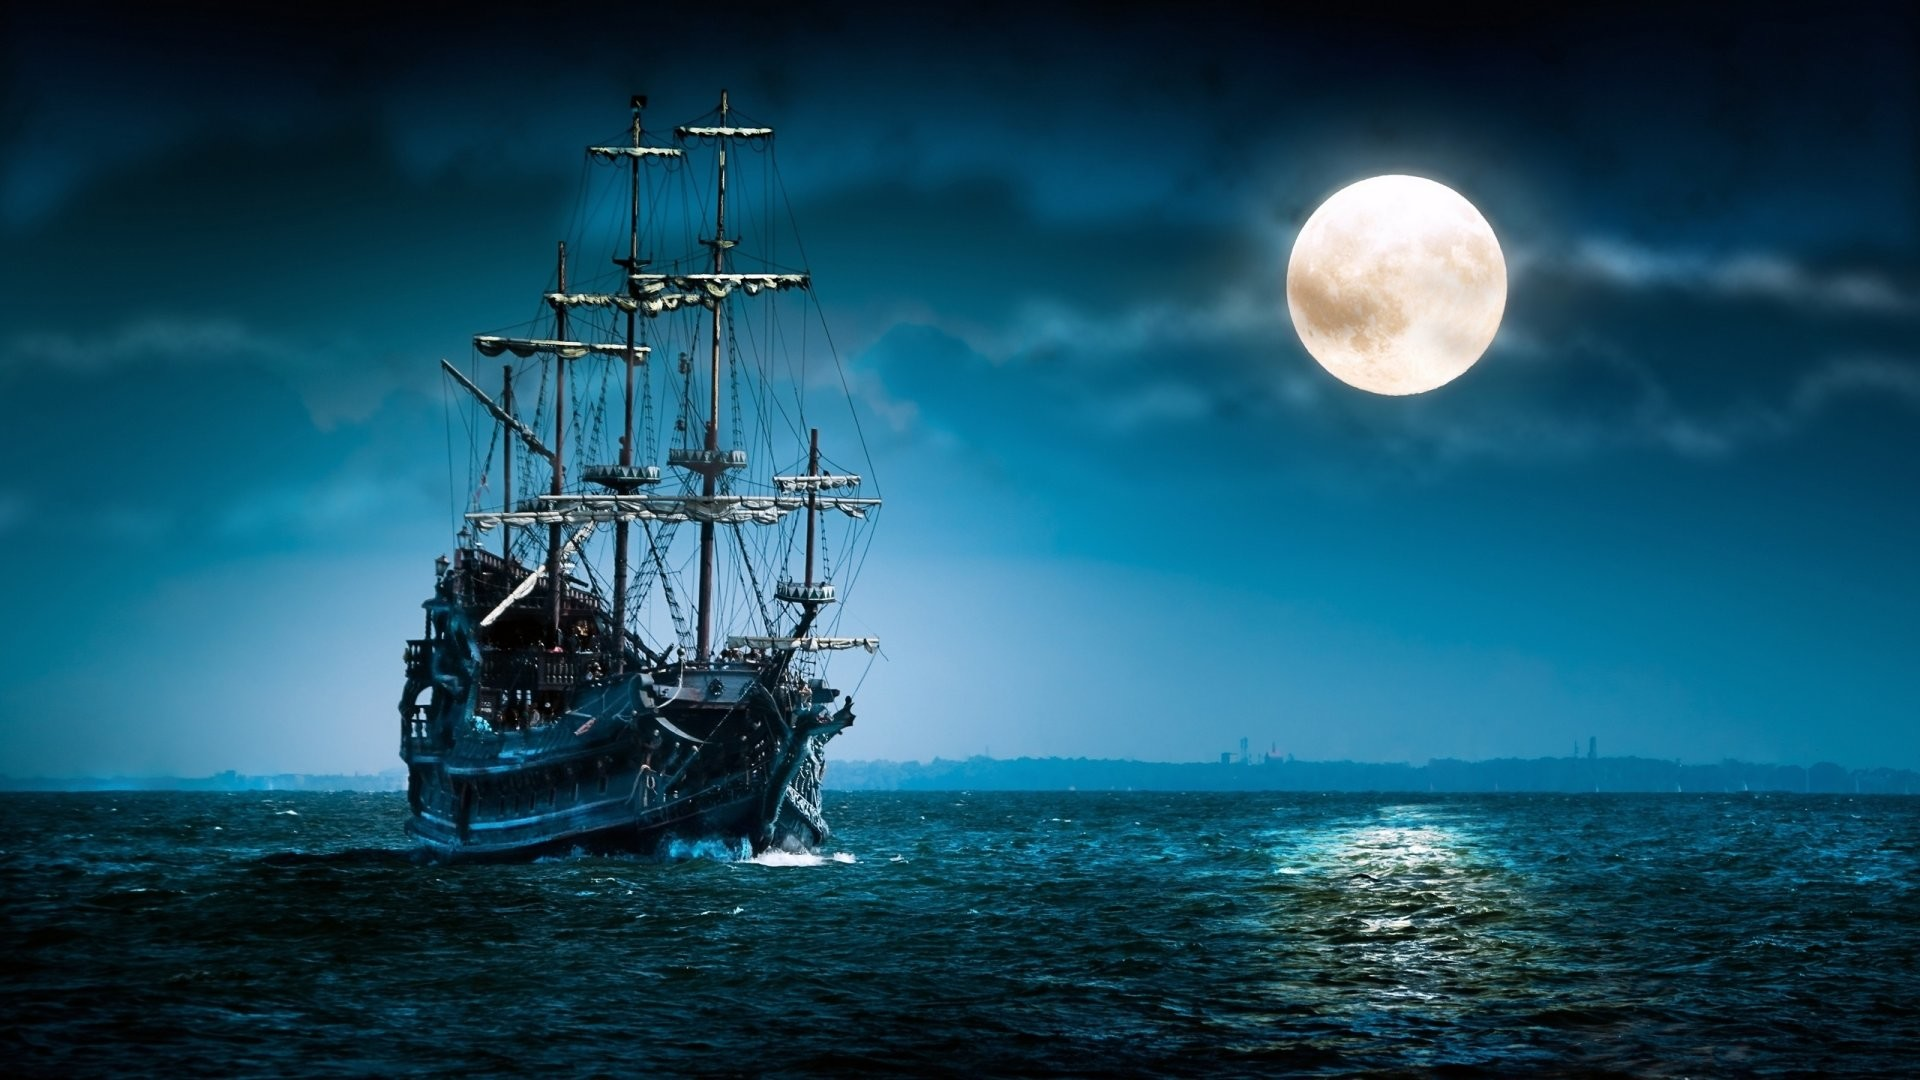 1920x1080 sailboat sea moon ship boat ocean night mood wallpapers hd Wallpaper HD